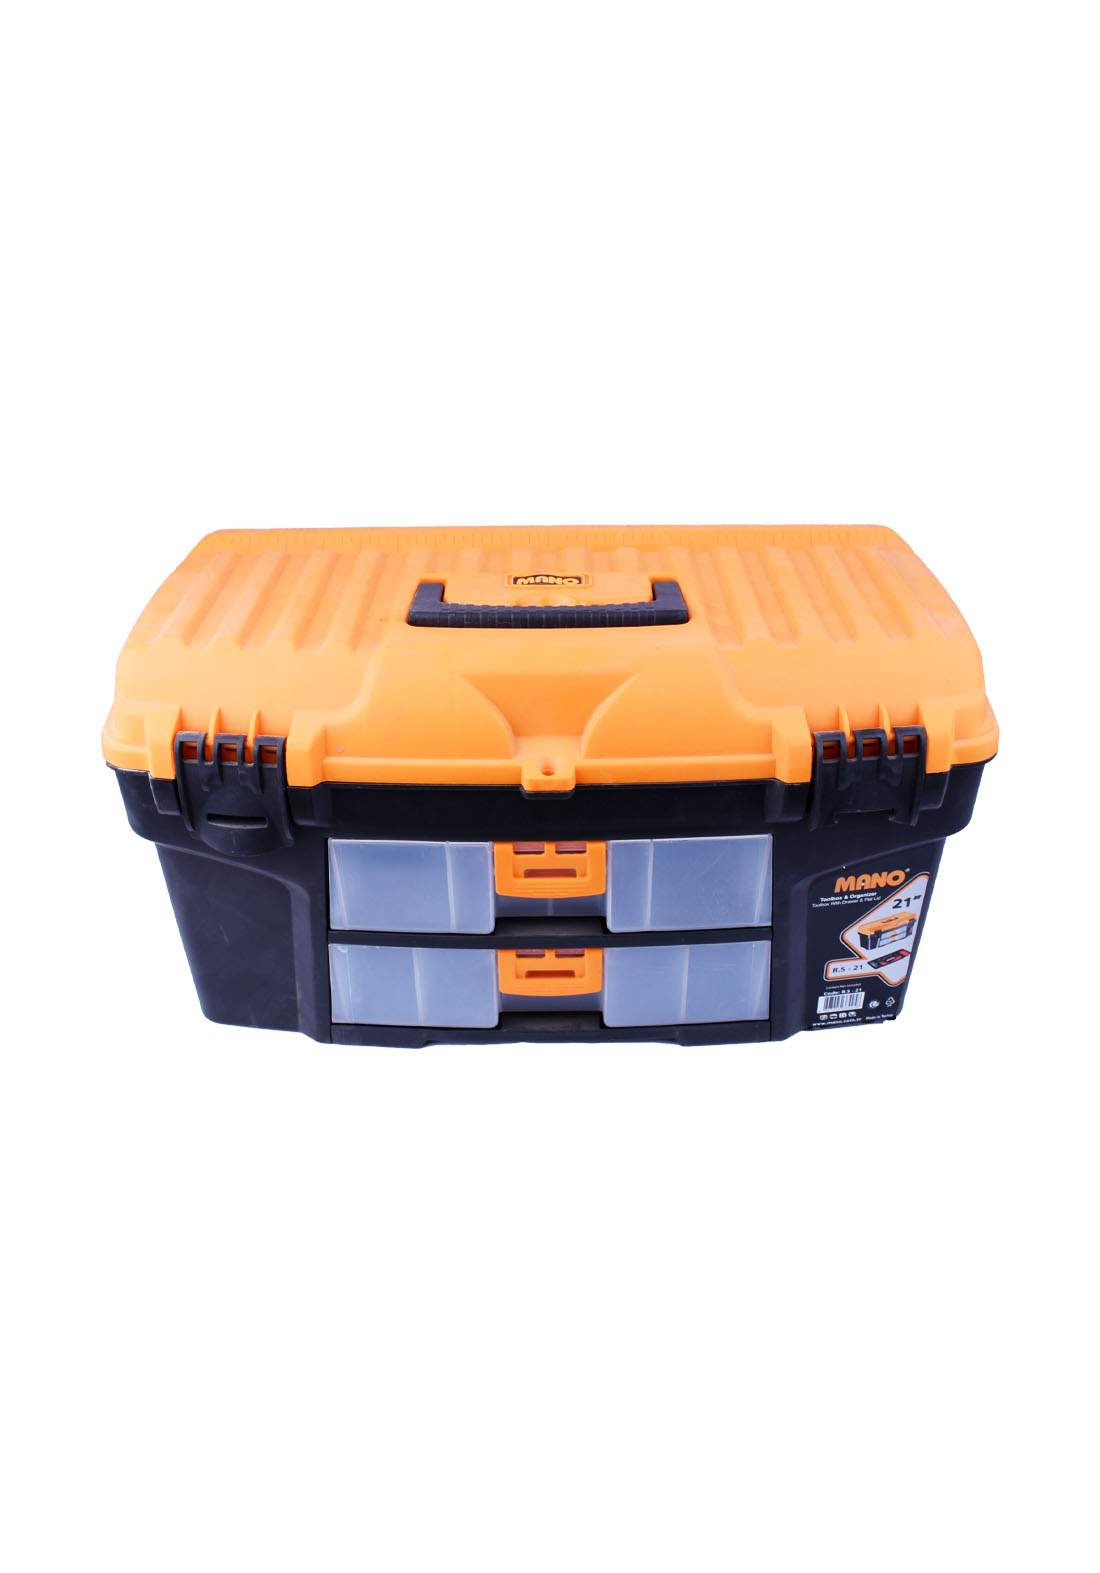 """Mano R.S-21 21"""" Toolbox With Drawer & Flat Lid حقيبة عدد يدوية"""